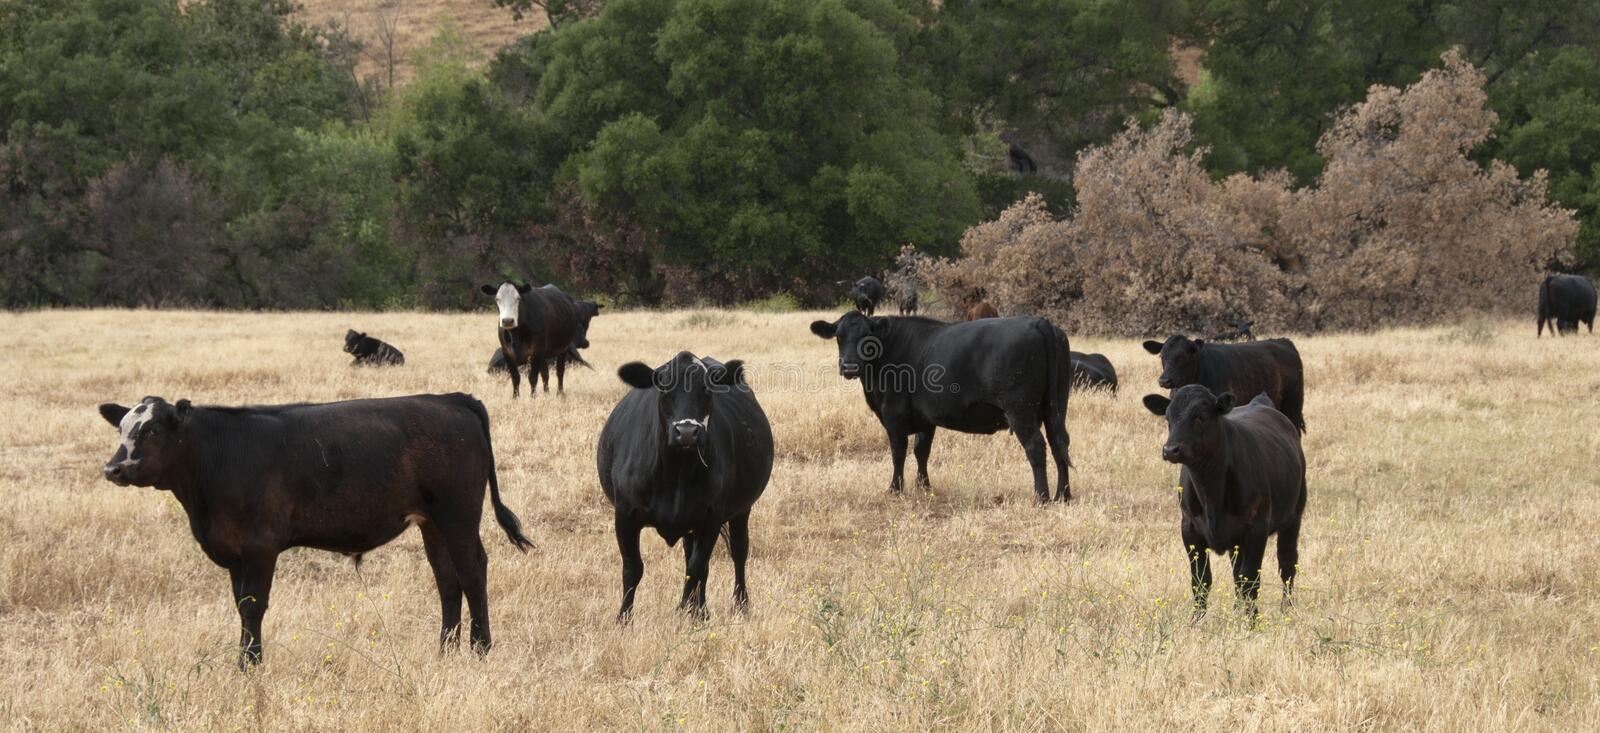 Black Baldy and Black Angus Cattle in a field stock images